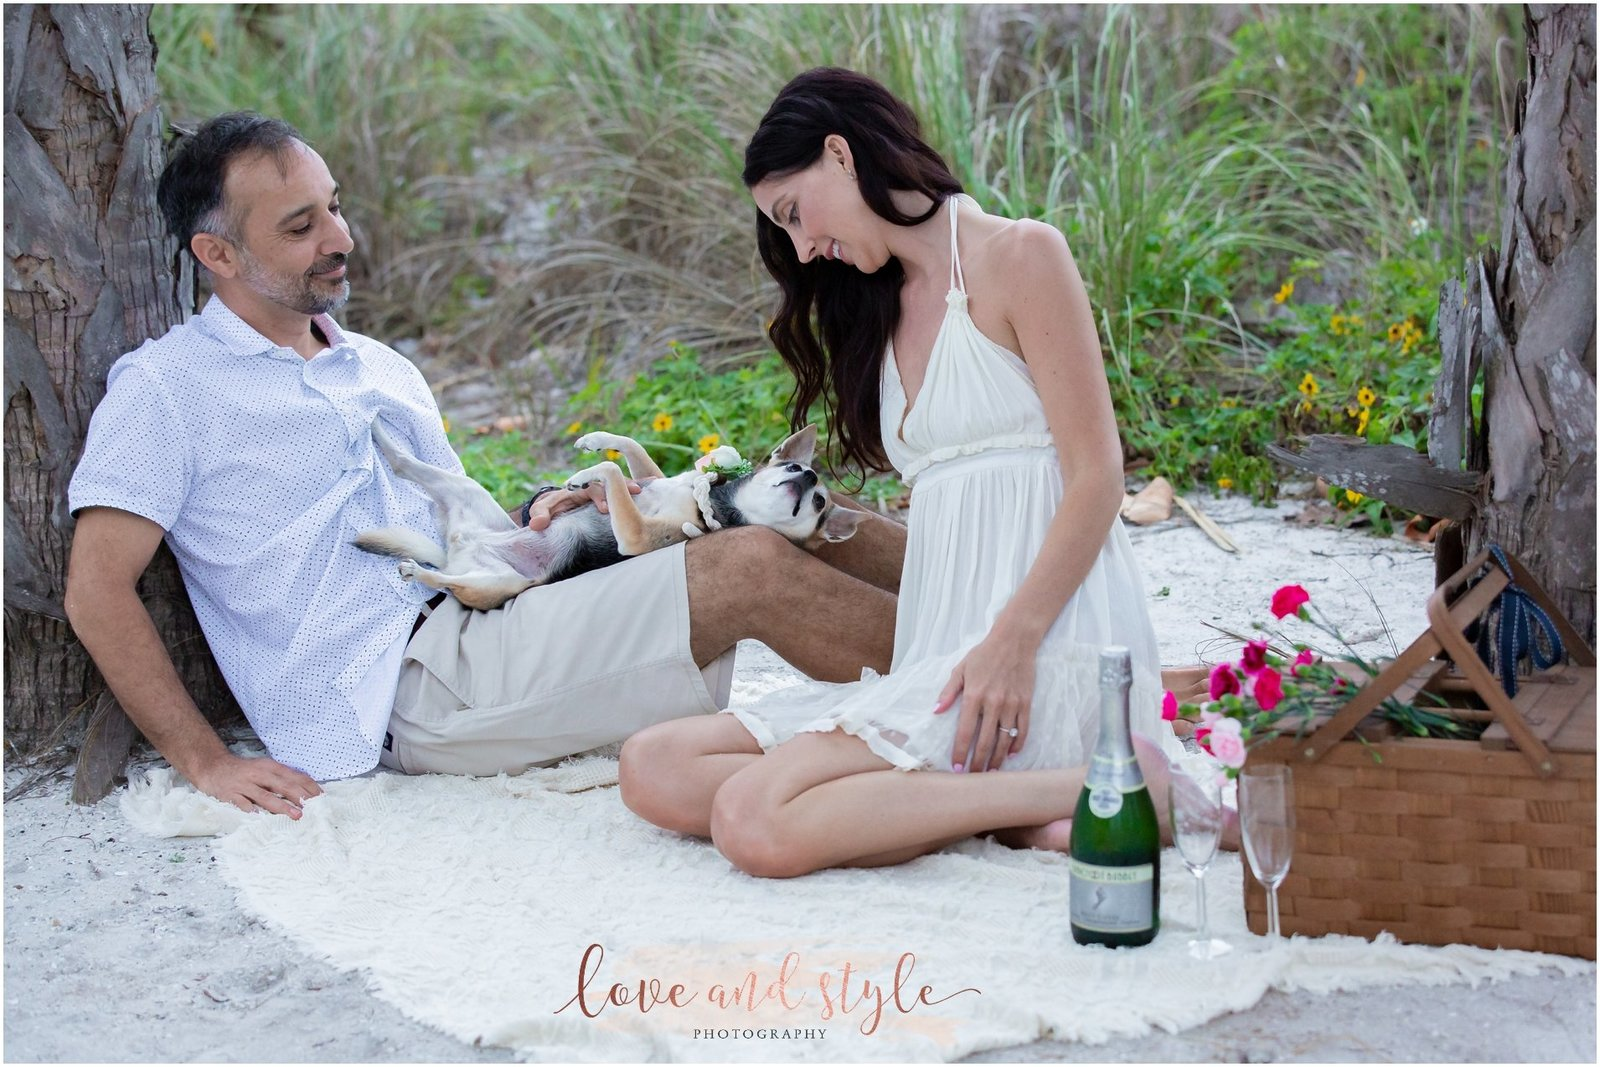 Engagement Photography on Anna Maria Island. Couple with their dog on a blanket having a picnic